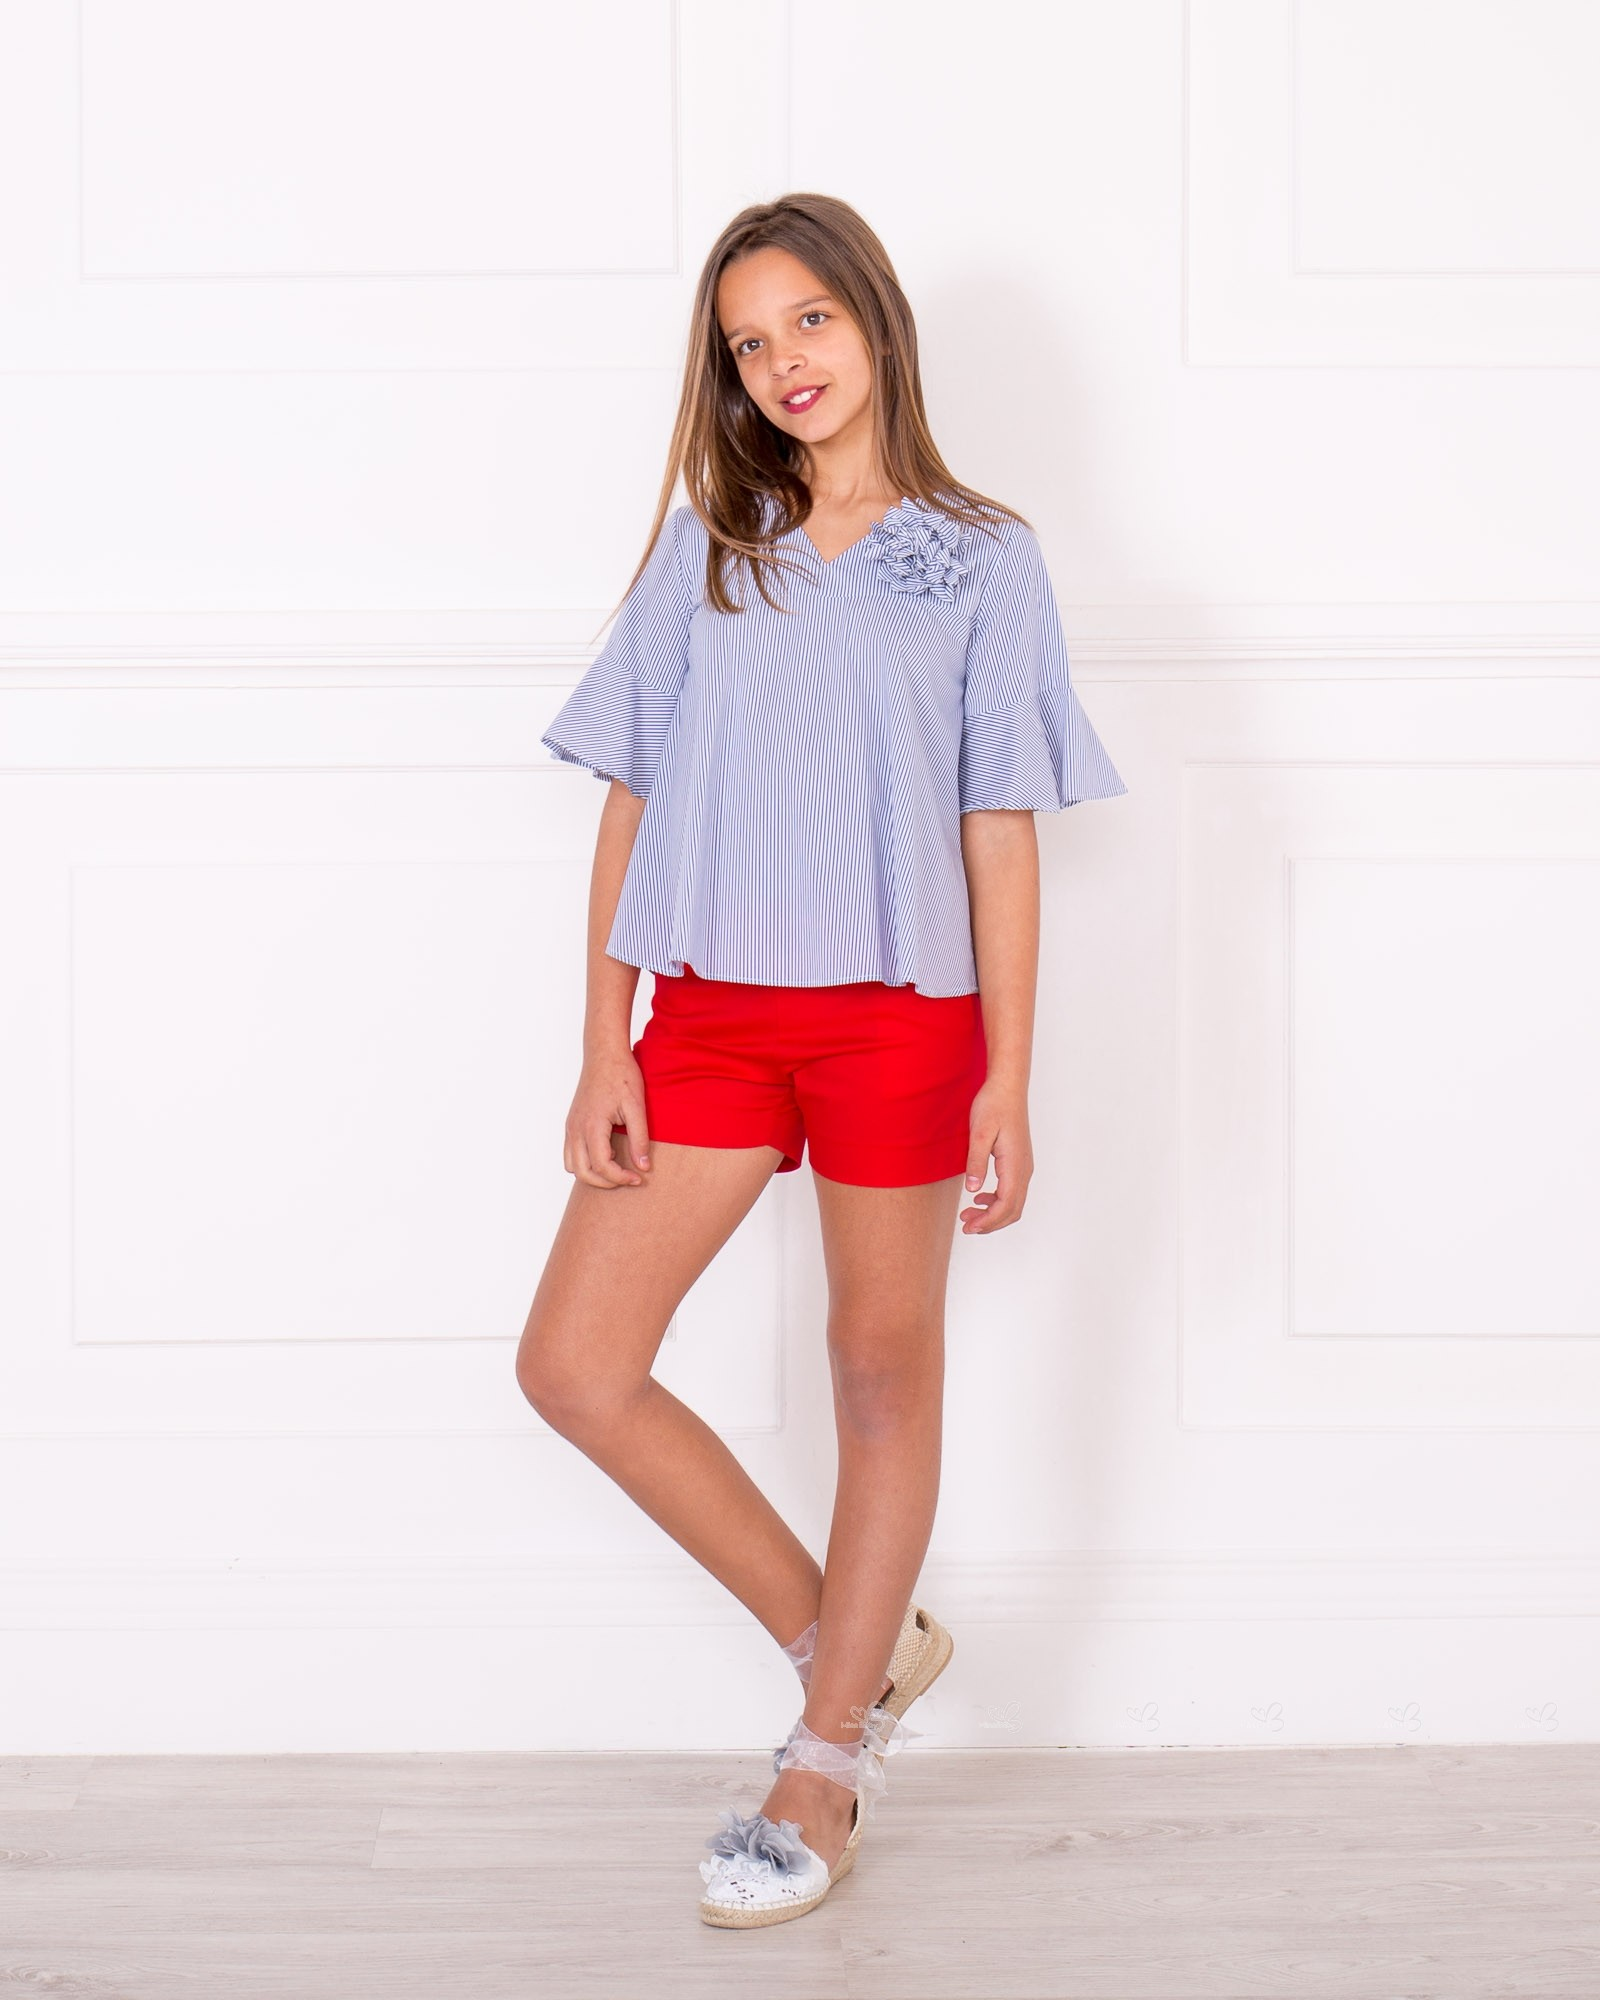 Girls Navy Blue u0026 White Striped Blouse with Red Cotton Shorts Outfit | Missbaby